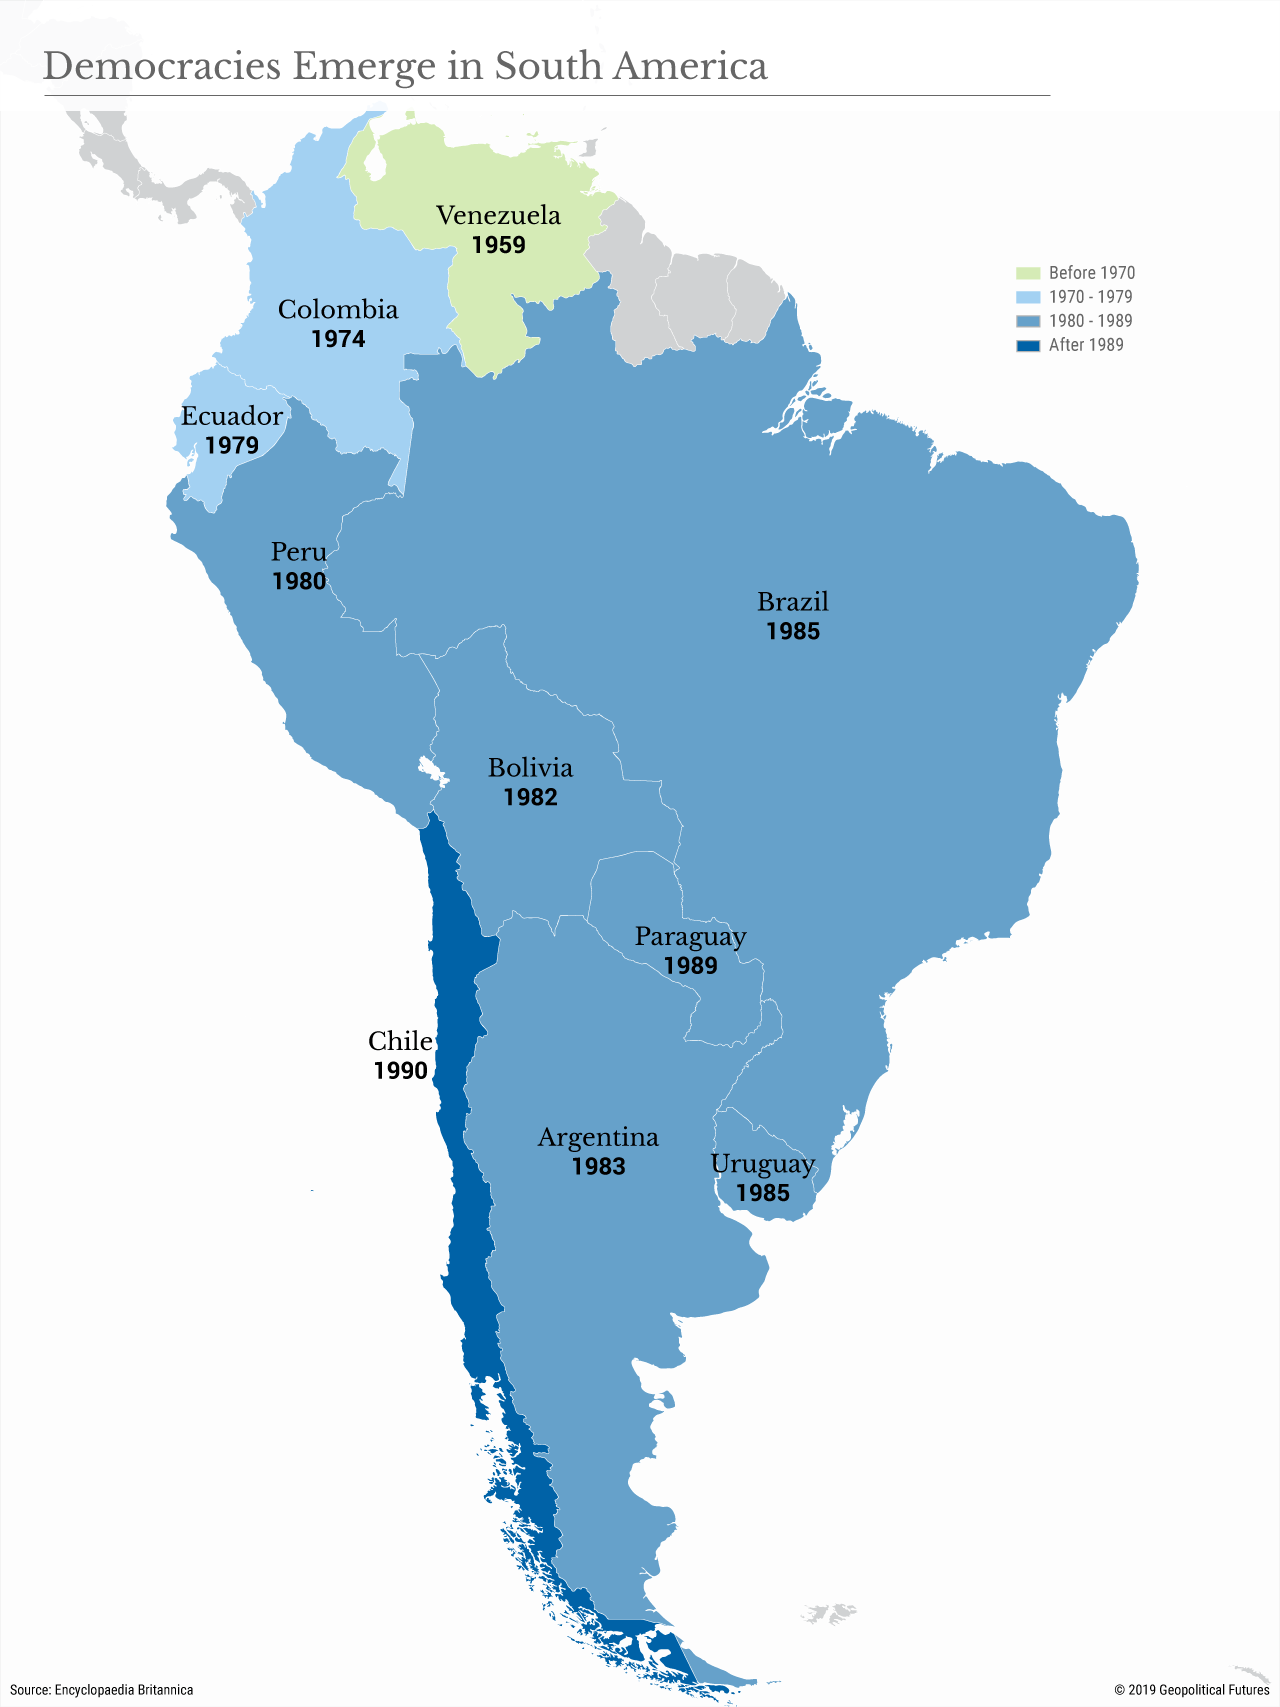 Democracies Emerge in South America